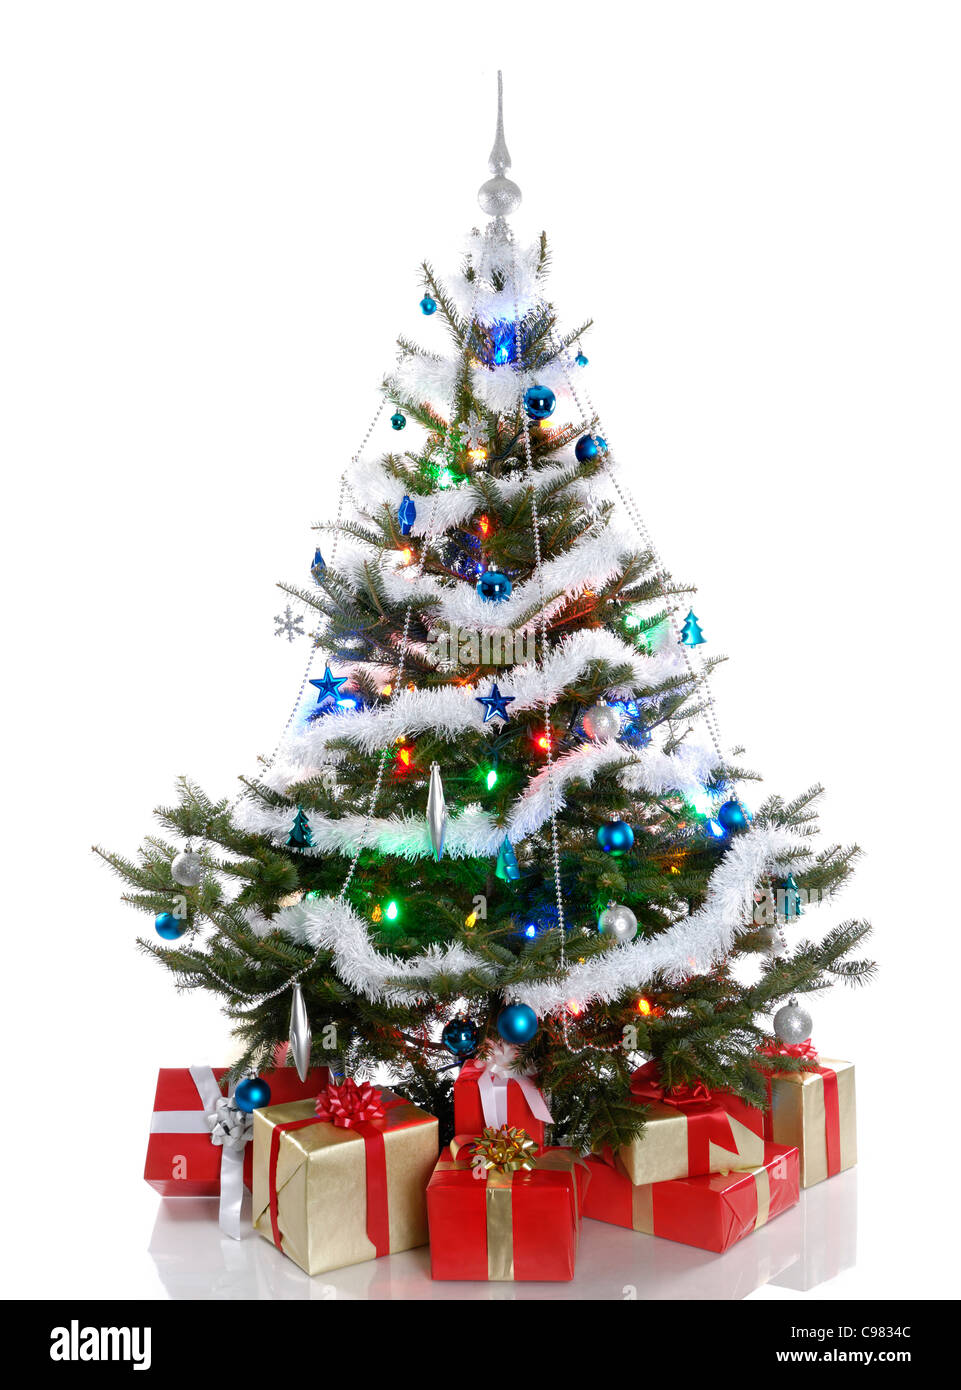 Decorated Christmas tree with gifts under it. Isolated on white background. - Stock Image